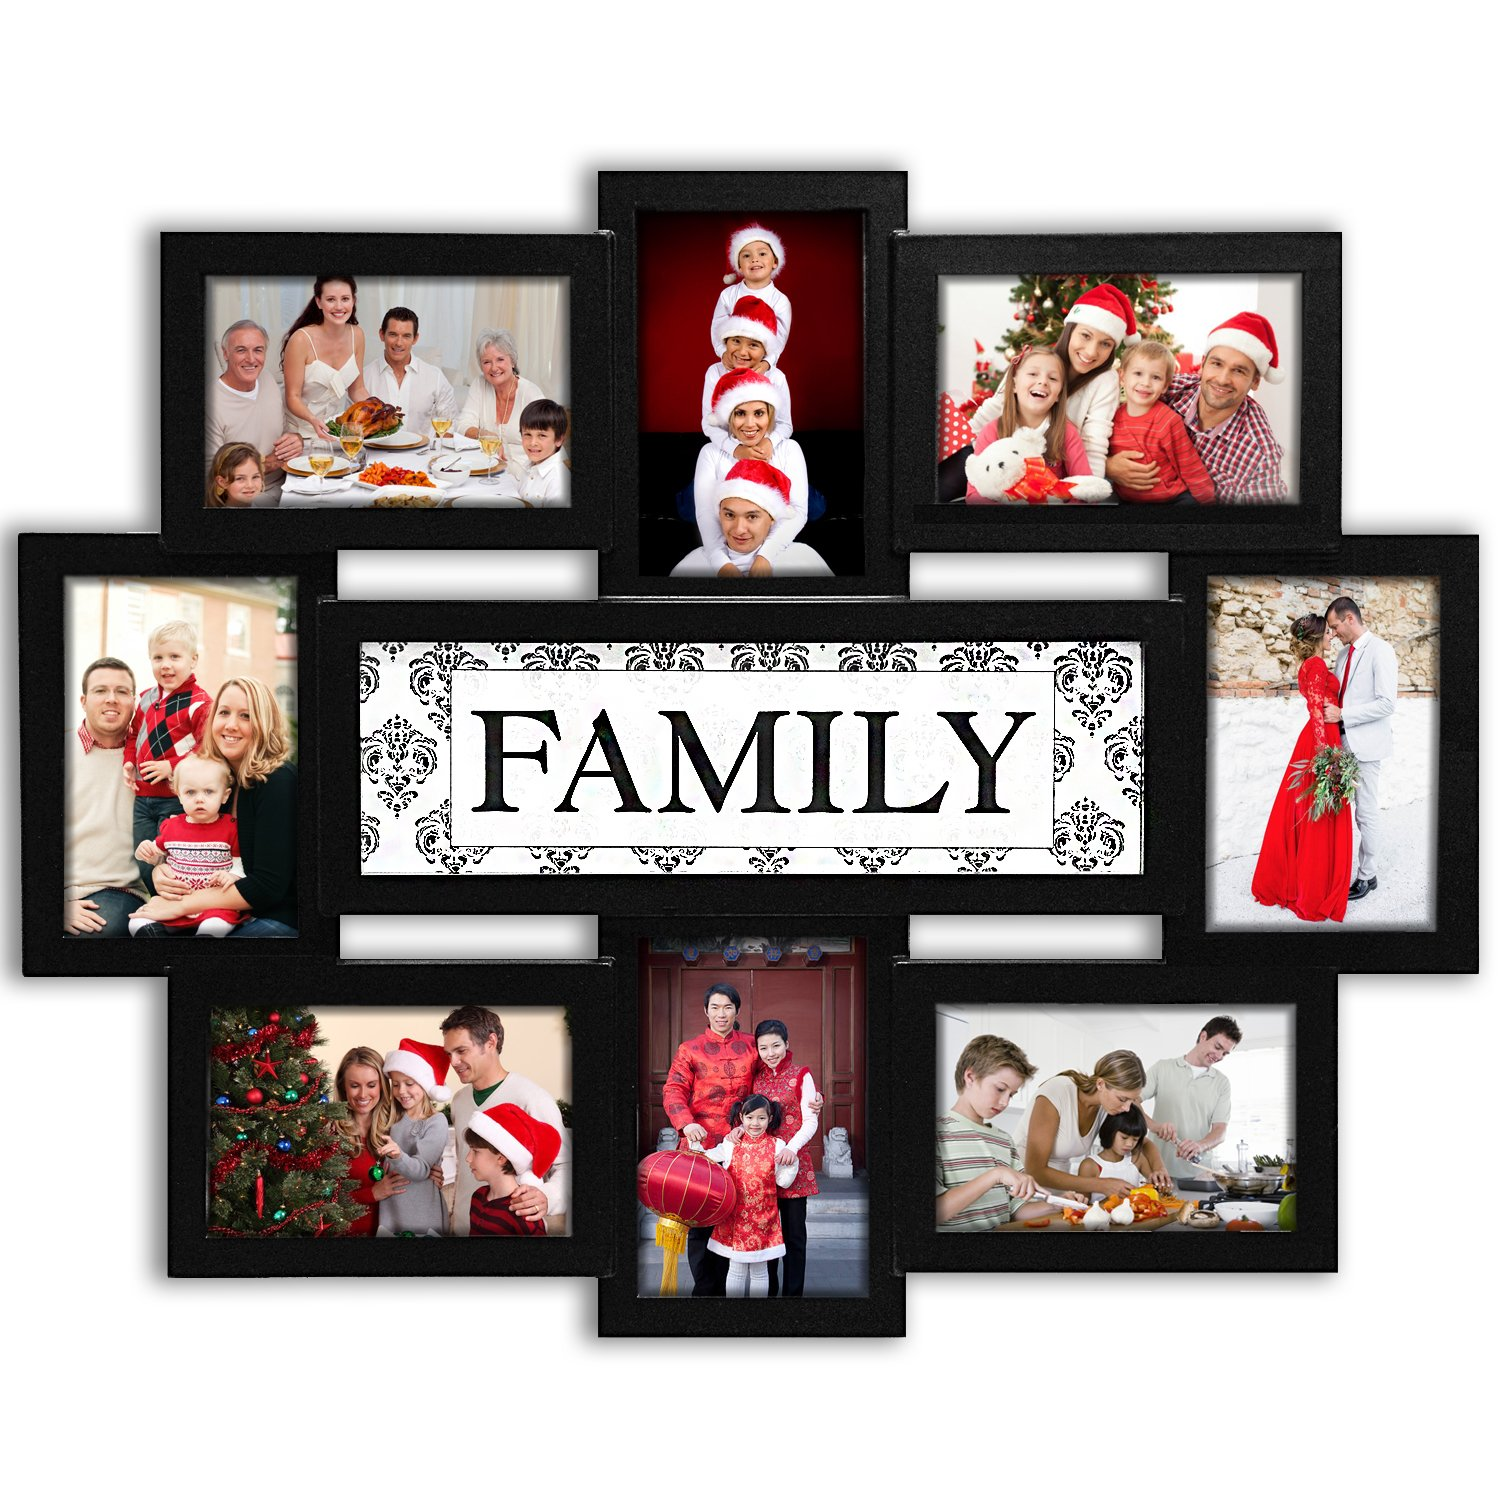 Jerry & Maggie - Photo Frame 22x17 Family Theme Black Picture Frame Selfie Gallery Collage Wall Hanging for 6x4 Photo - 8 Photo Sockets - Wall Mounting Design by Jerry & Maggie